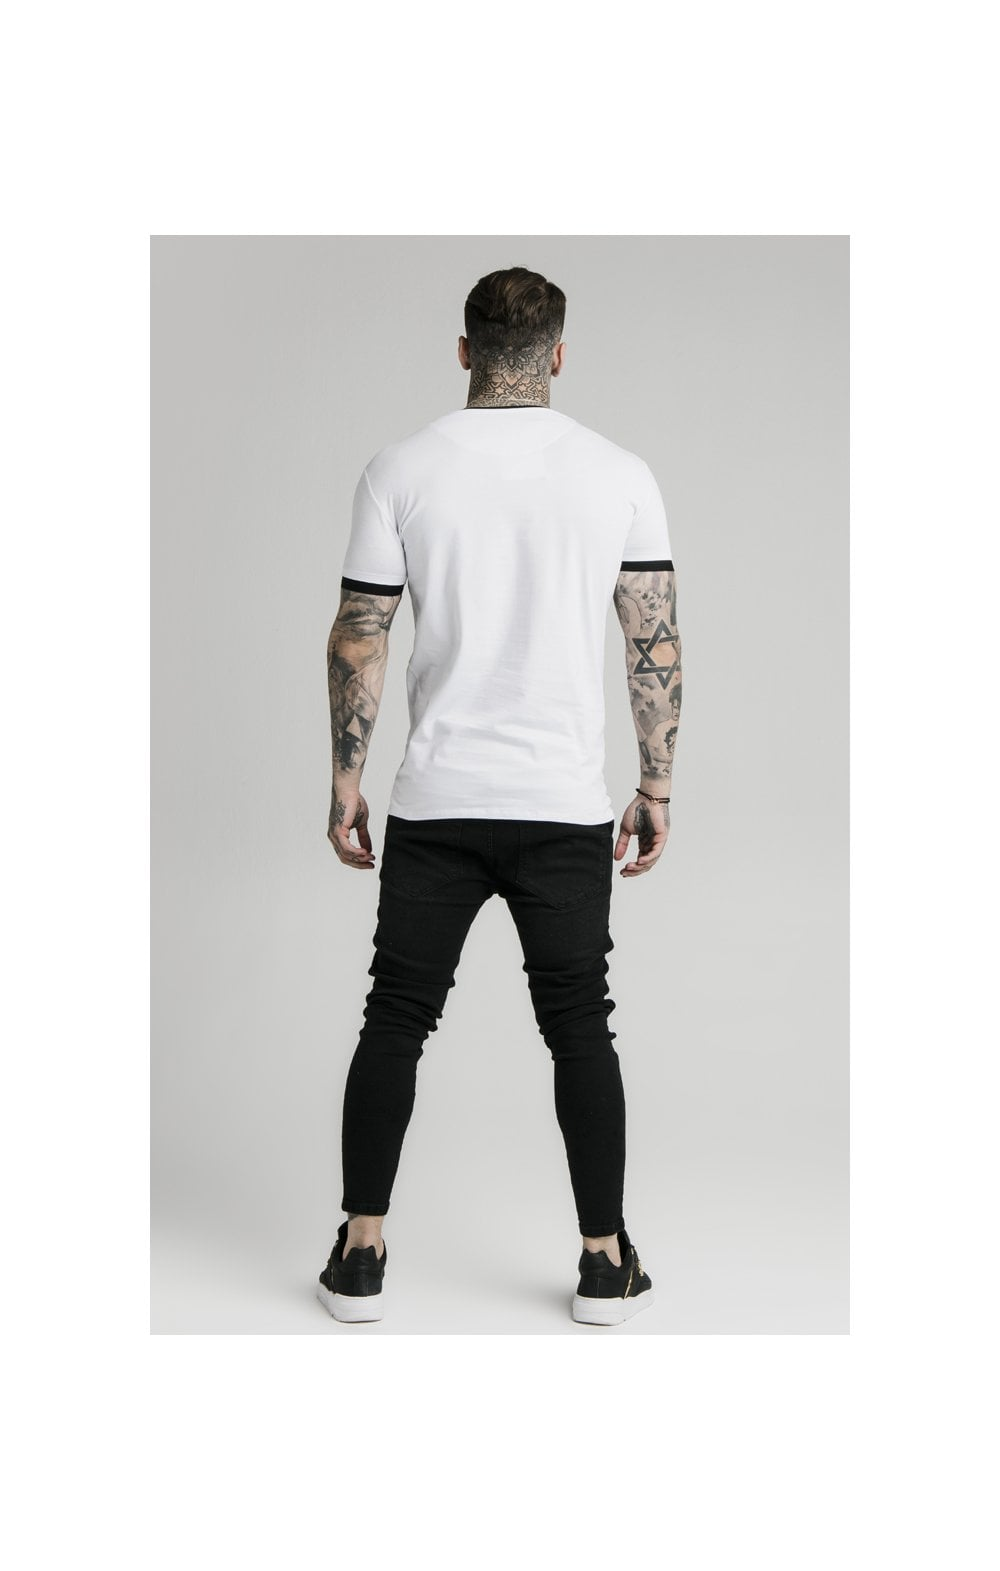 SikSilk S/S Inset Straight Hem Ringer Gym Tee – White (4)